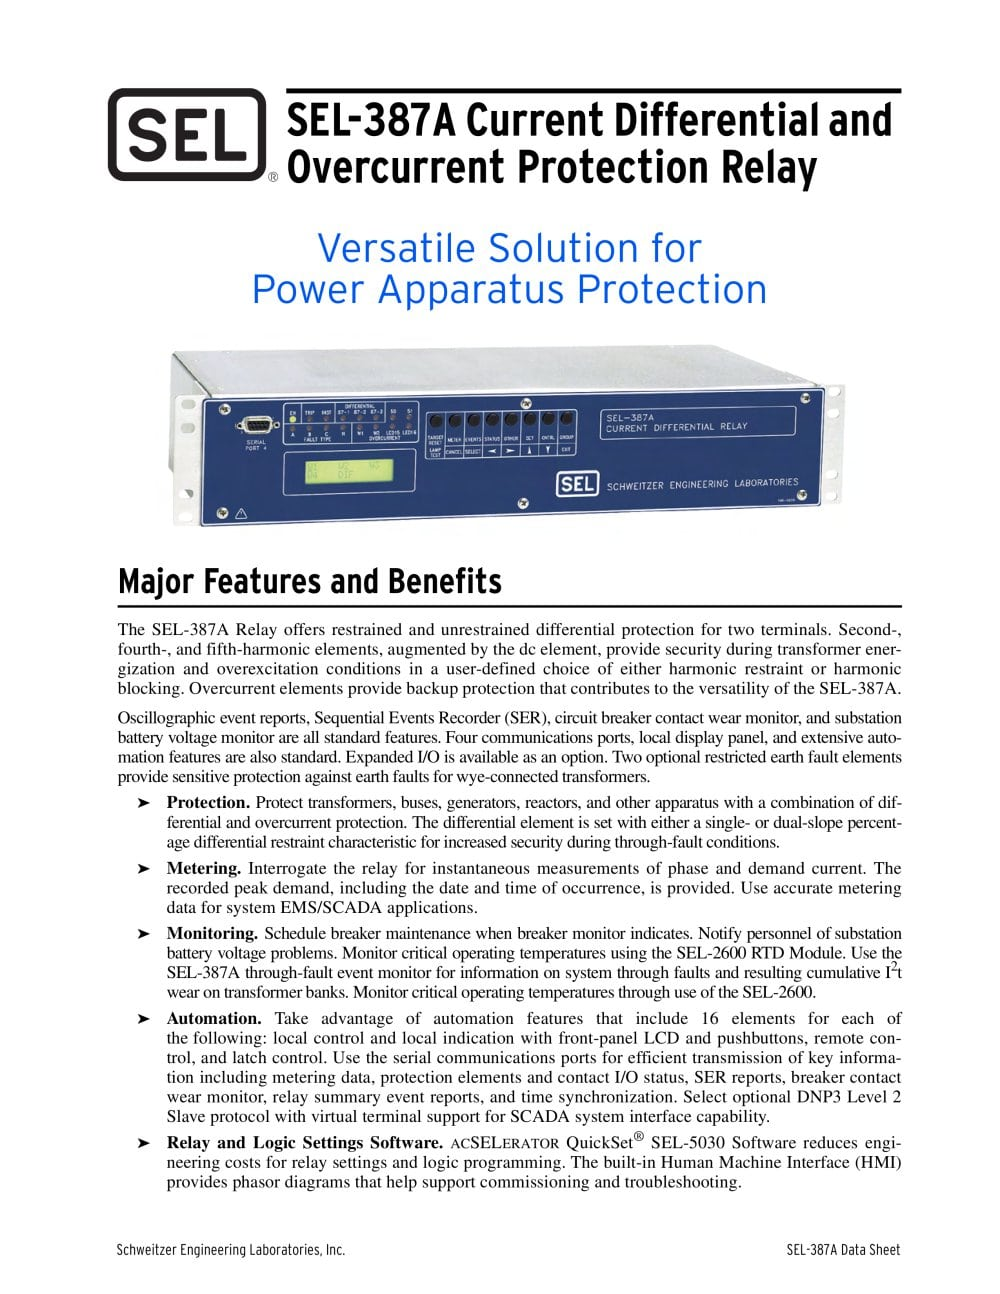 Sel 387a Current Differential And Overcurrent Protection Relay Circuit Breaker Ppt 1 16 Pages